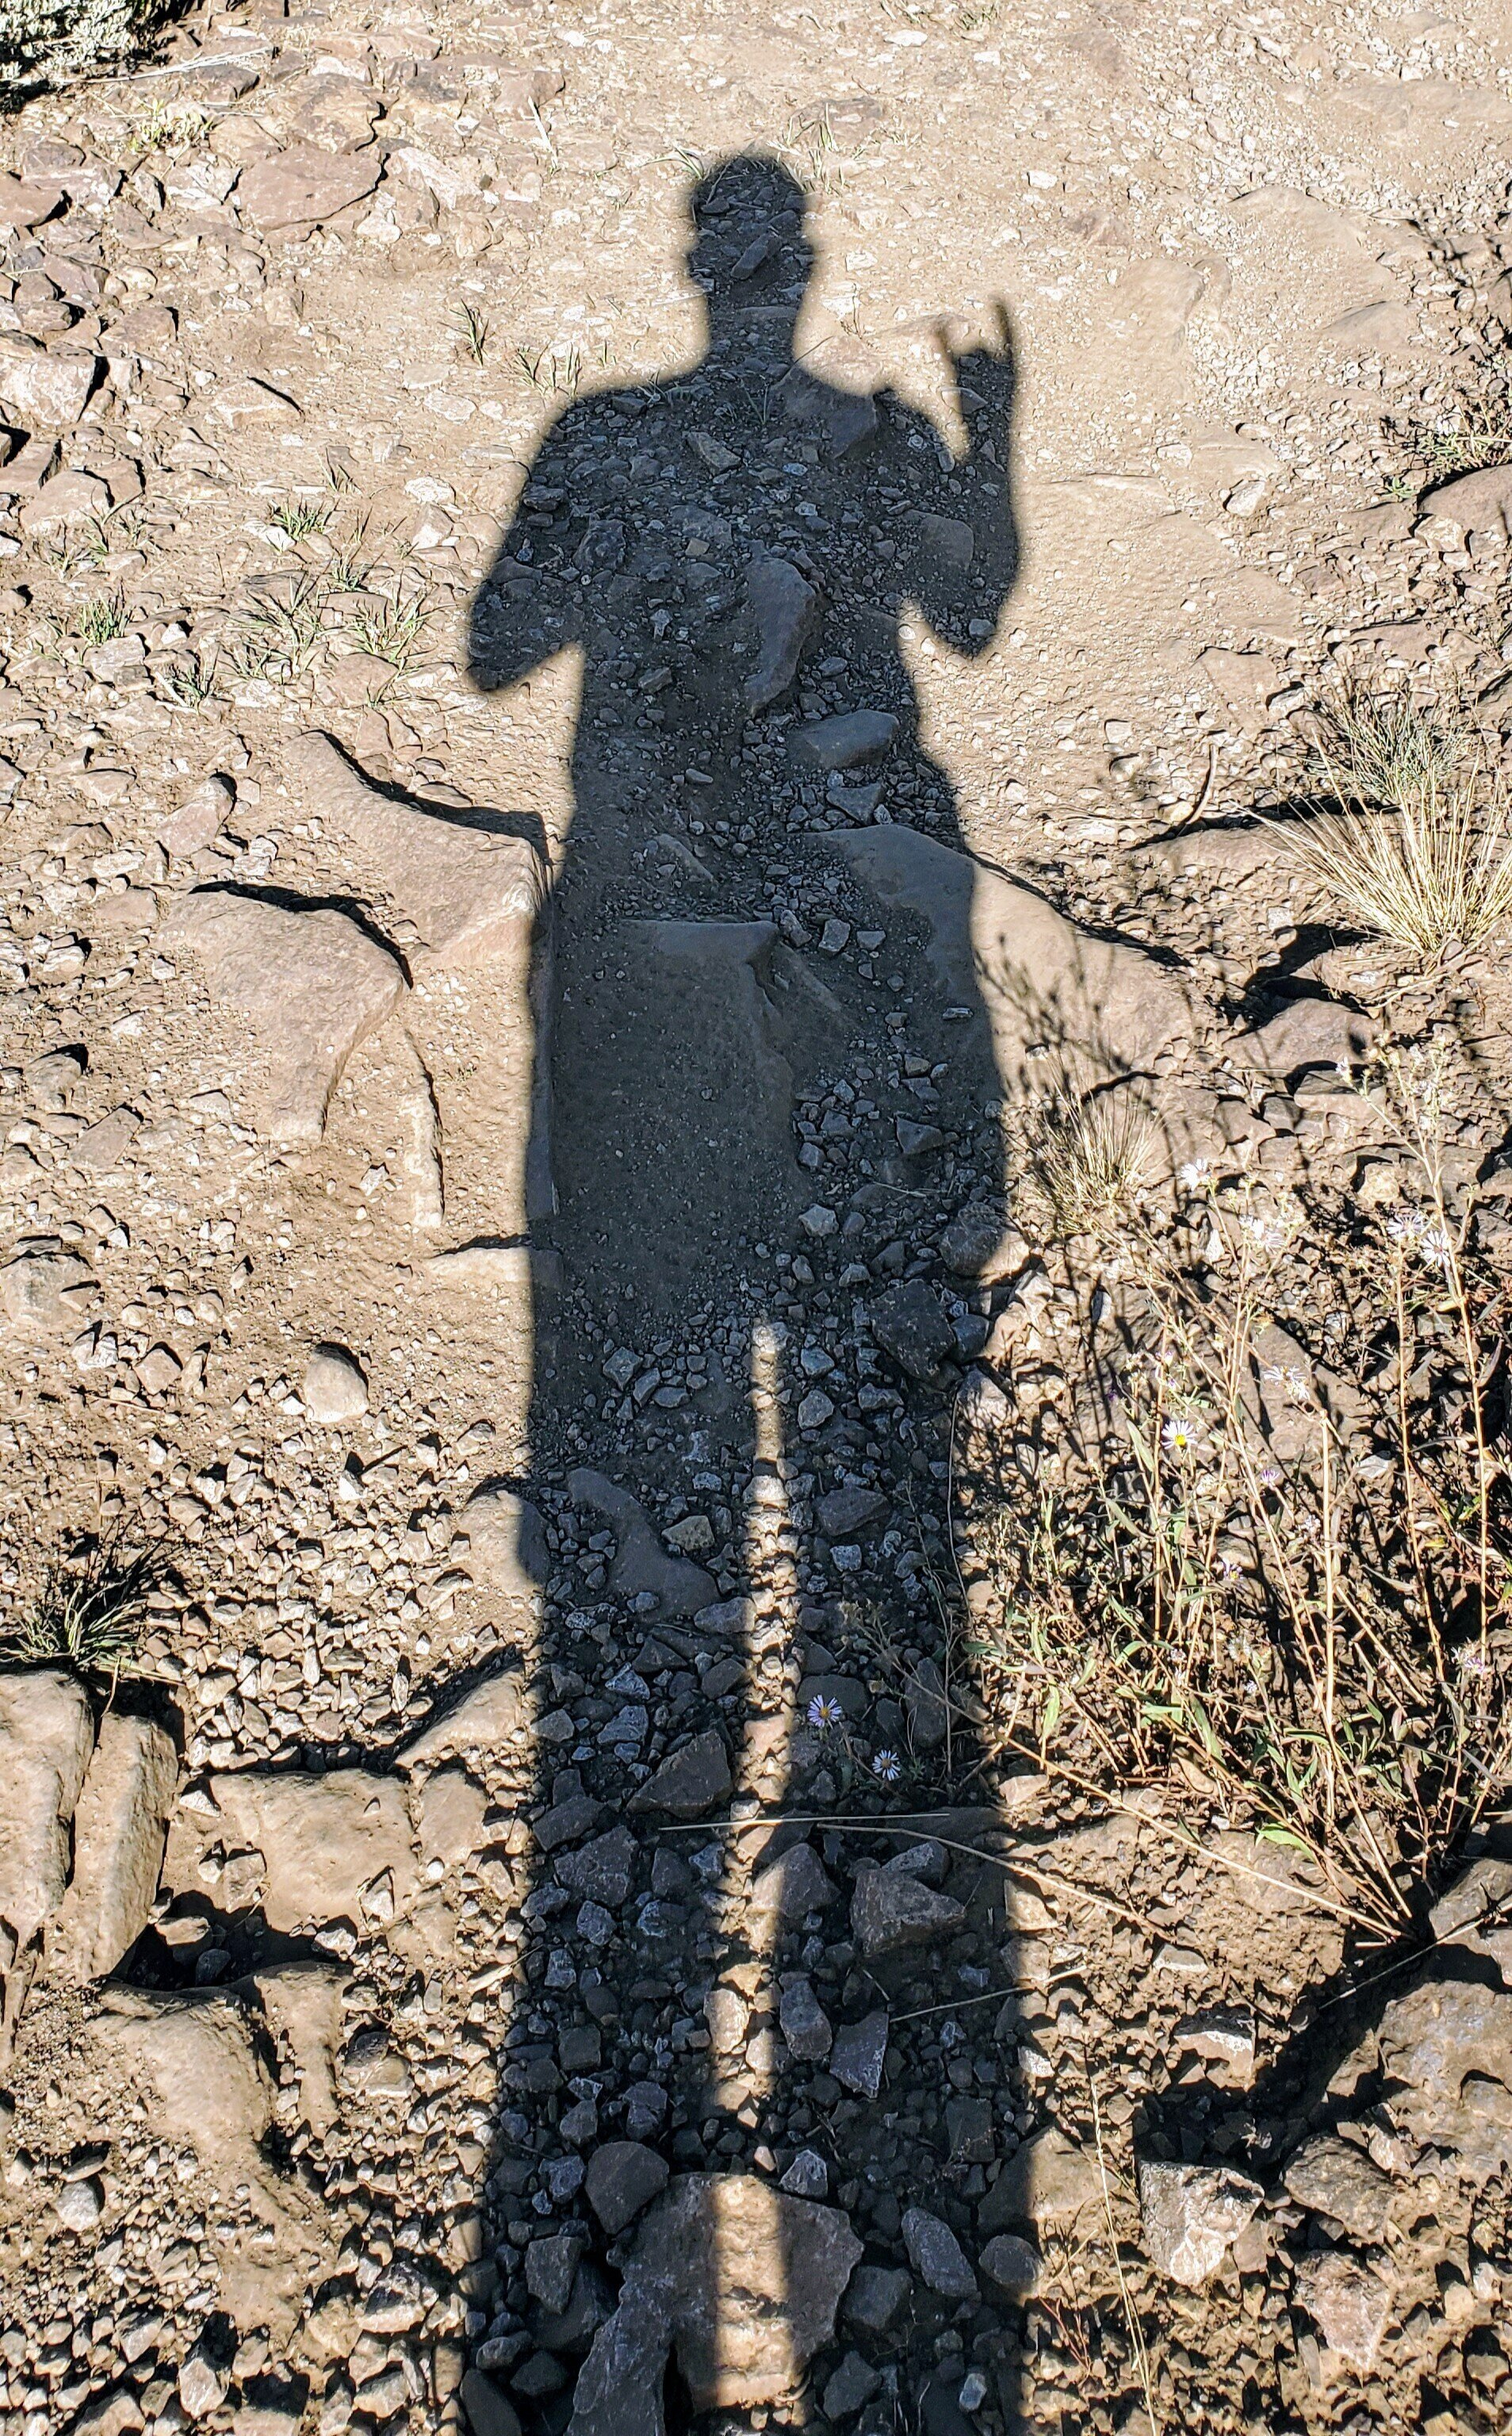 Christian's shadow during a hike in Utah